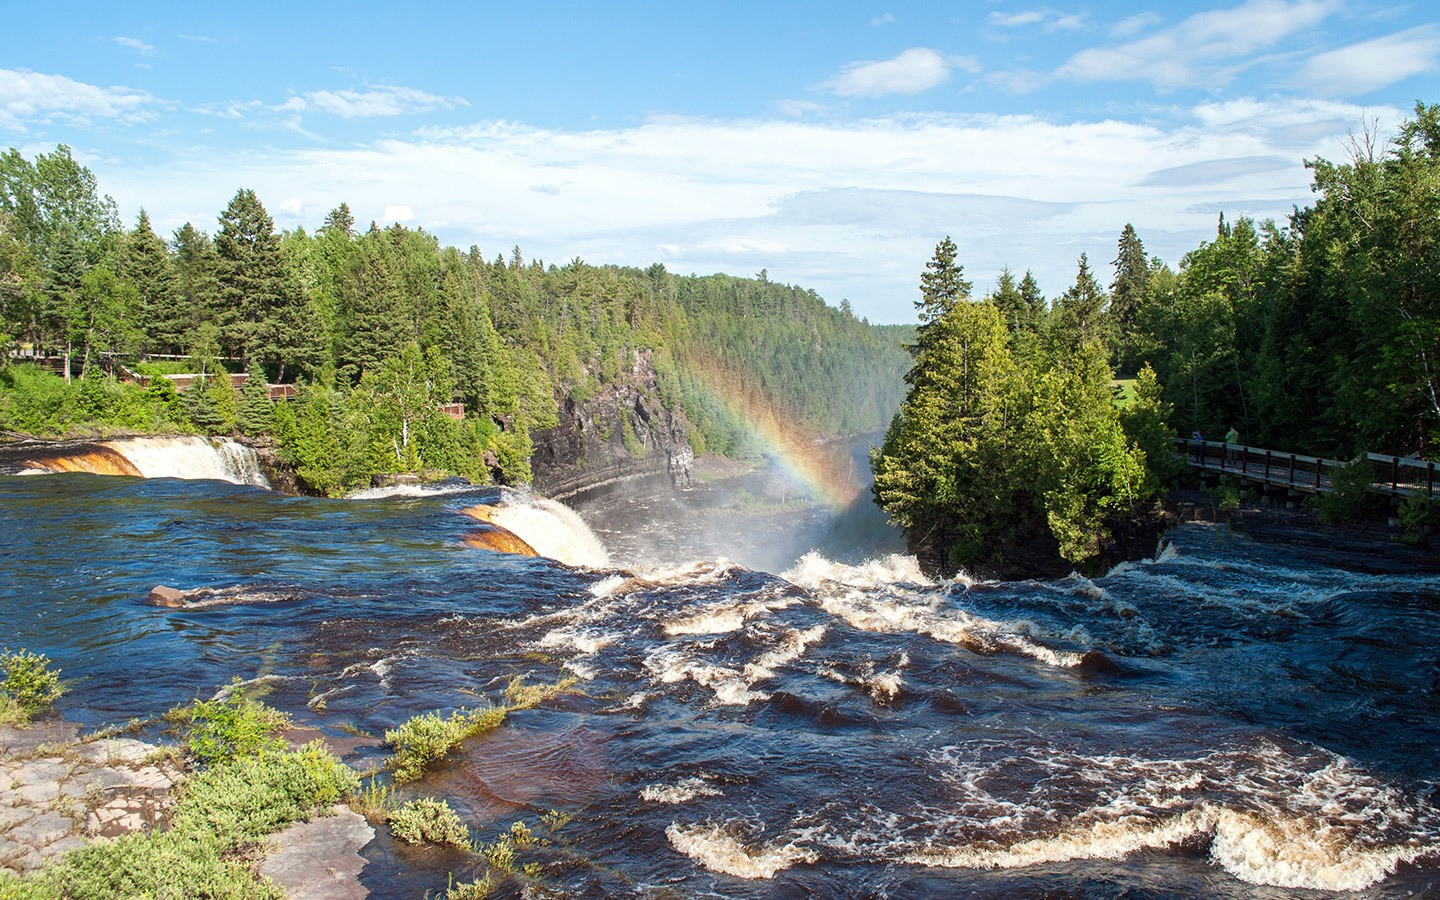 Rainbow in the Kakabeka Falls waterfall in Ontario